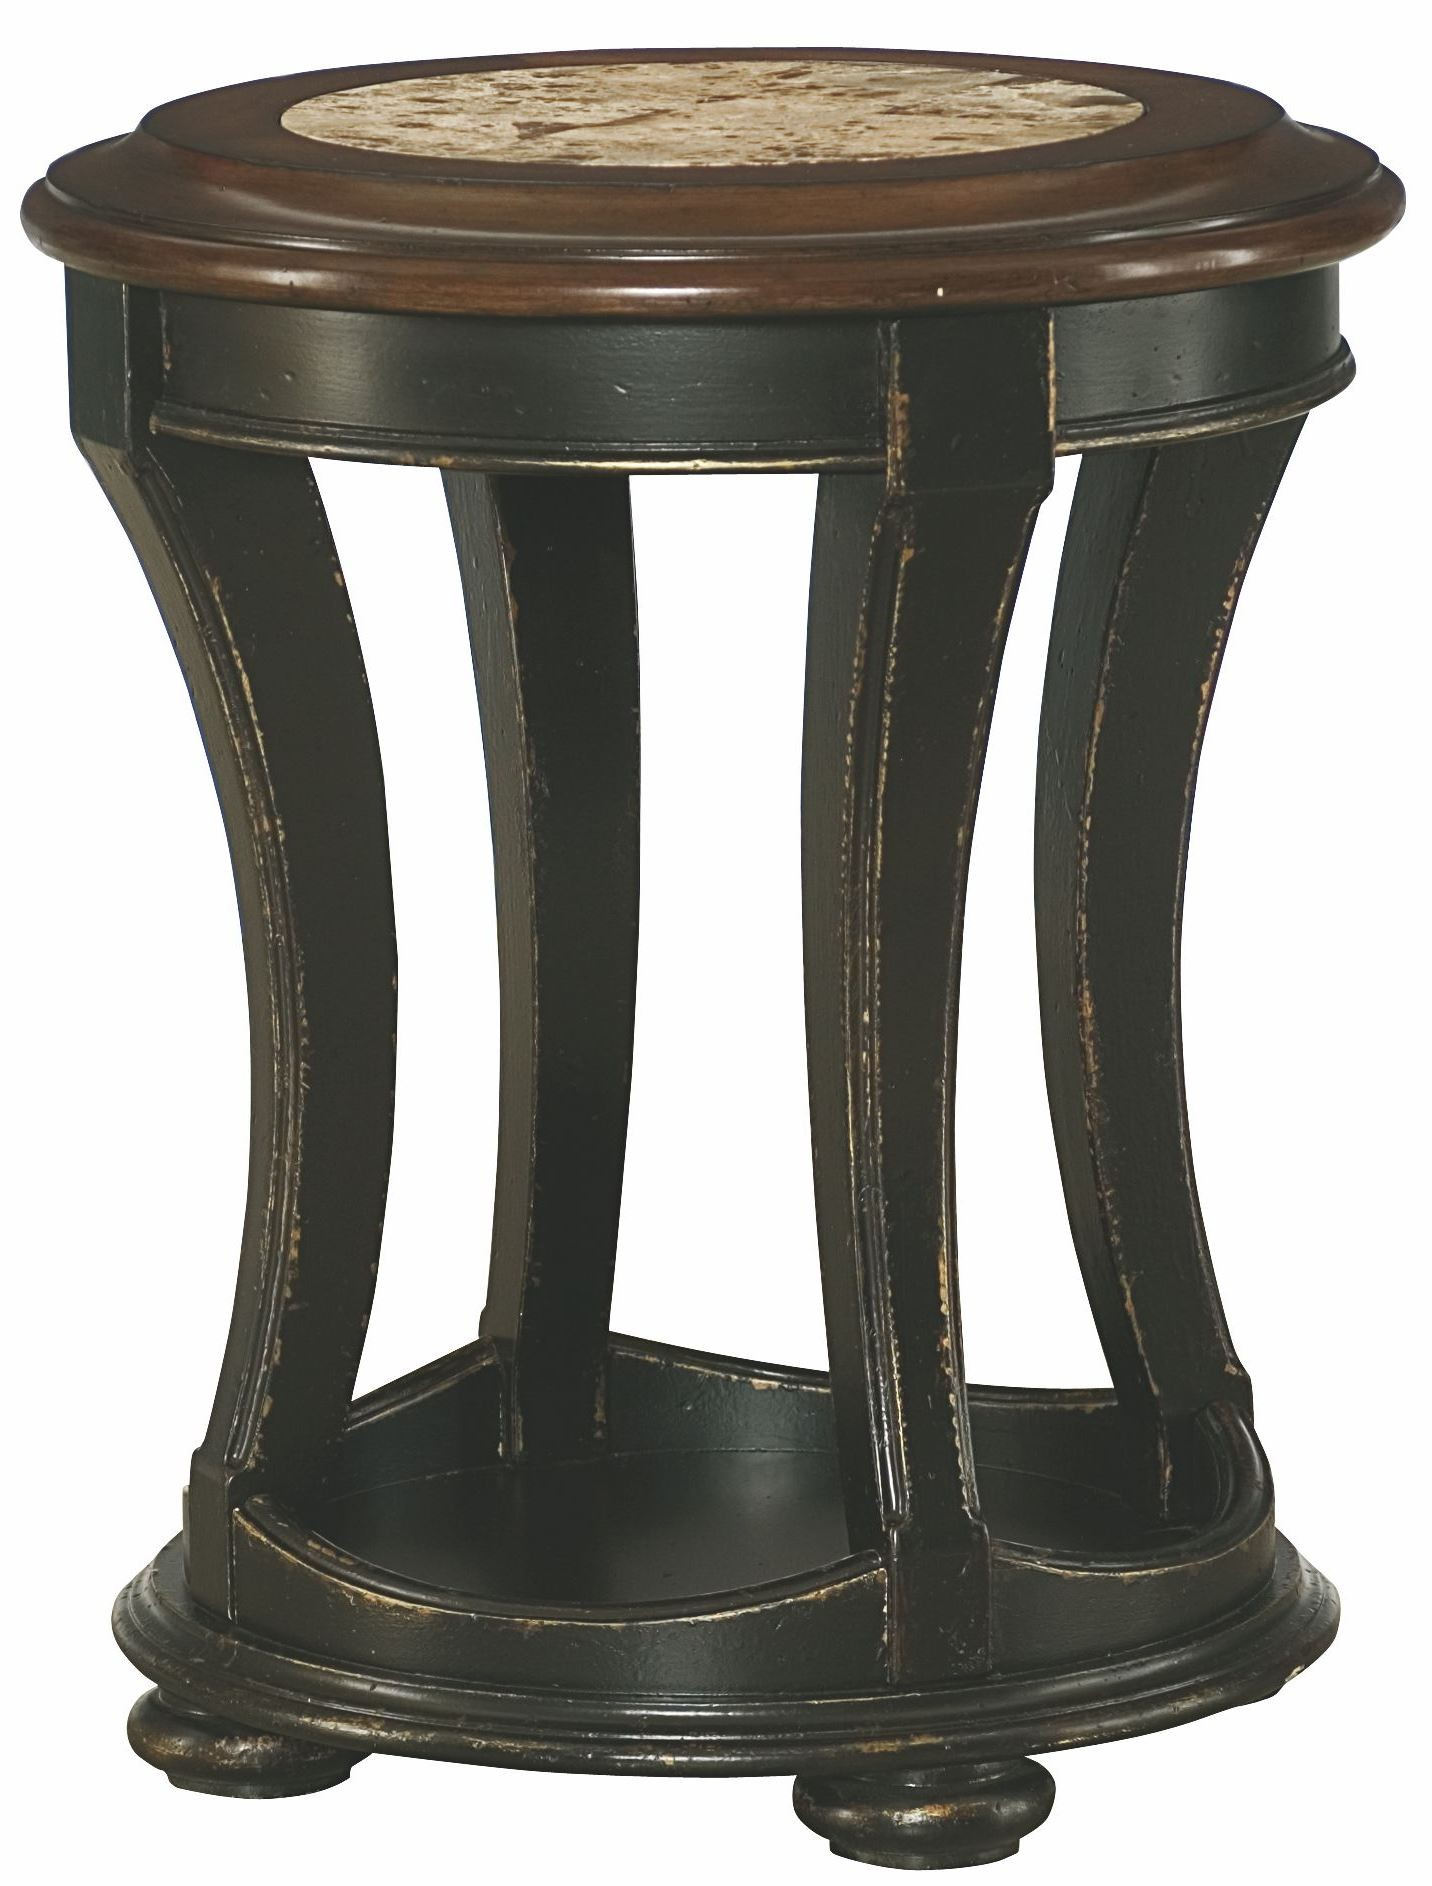 Dorset black round end table from hammary 347 916 for Black round end table